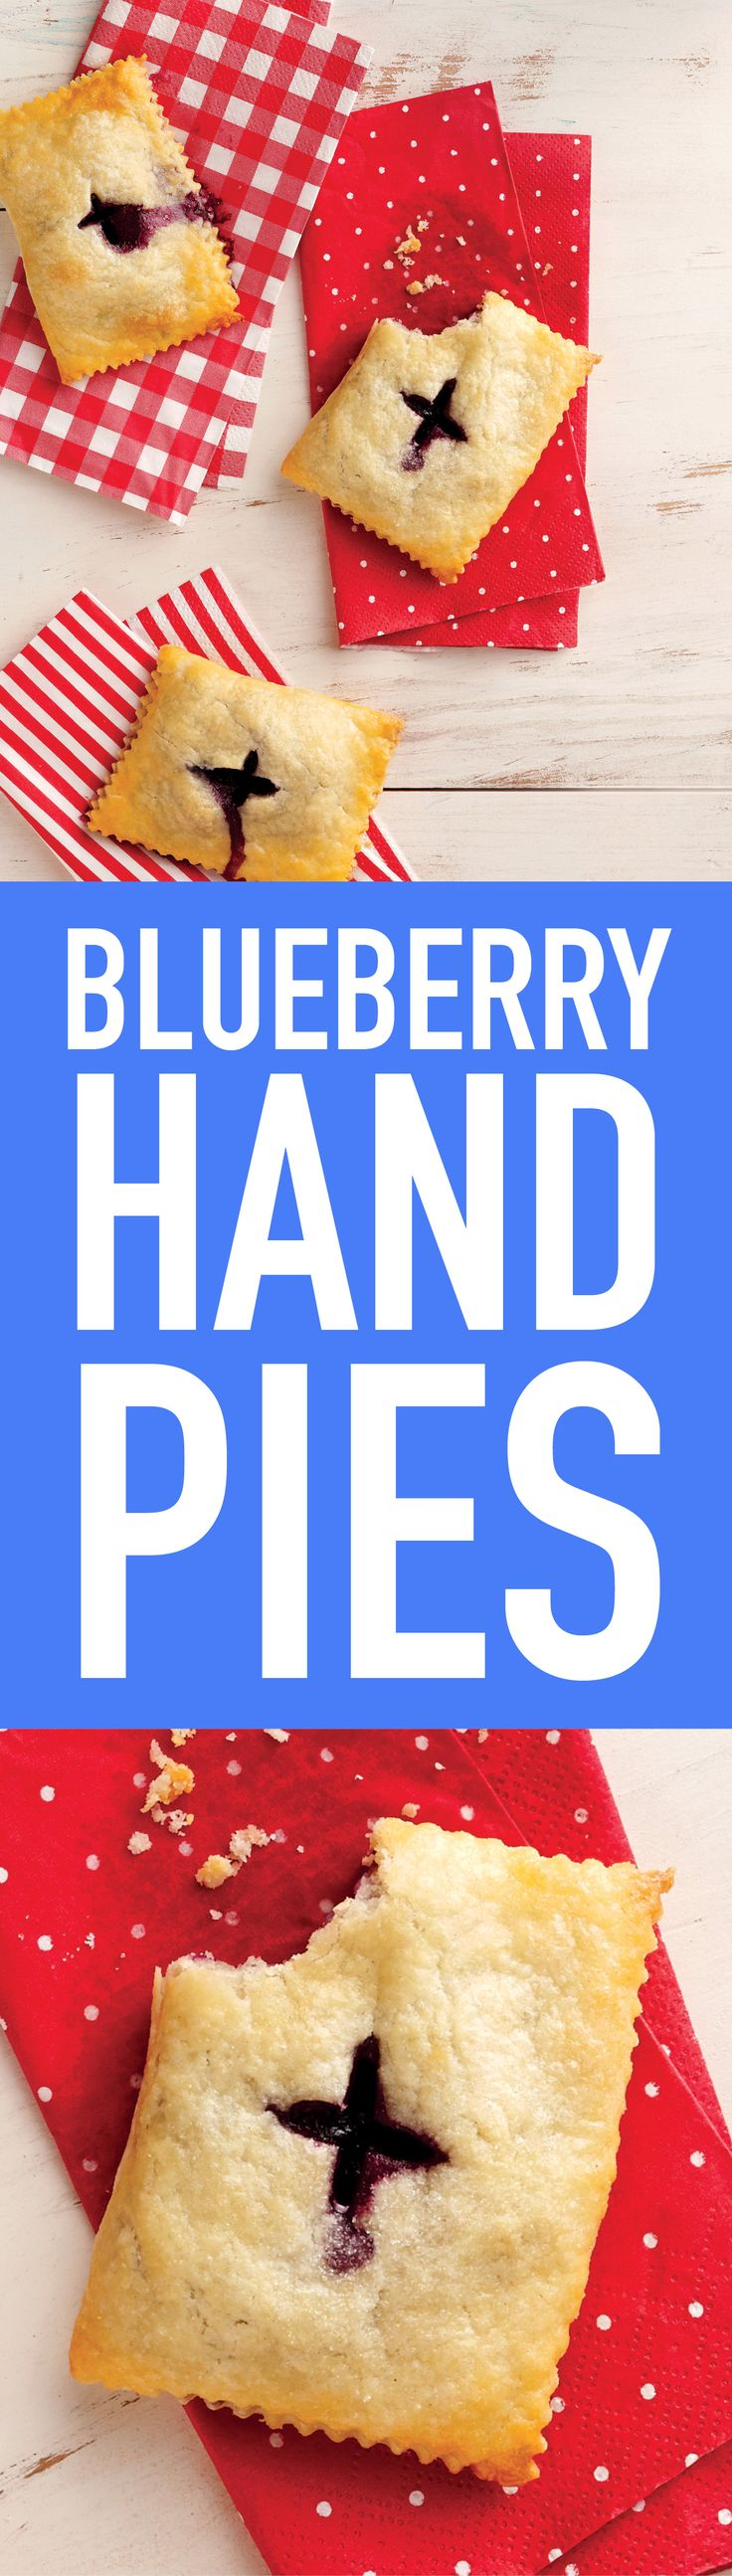 Make the most of blueberry season with these portable homemade pastries (just right for camping adventures and road trips!).